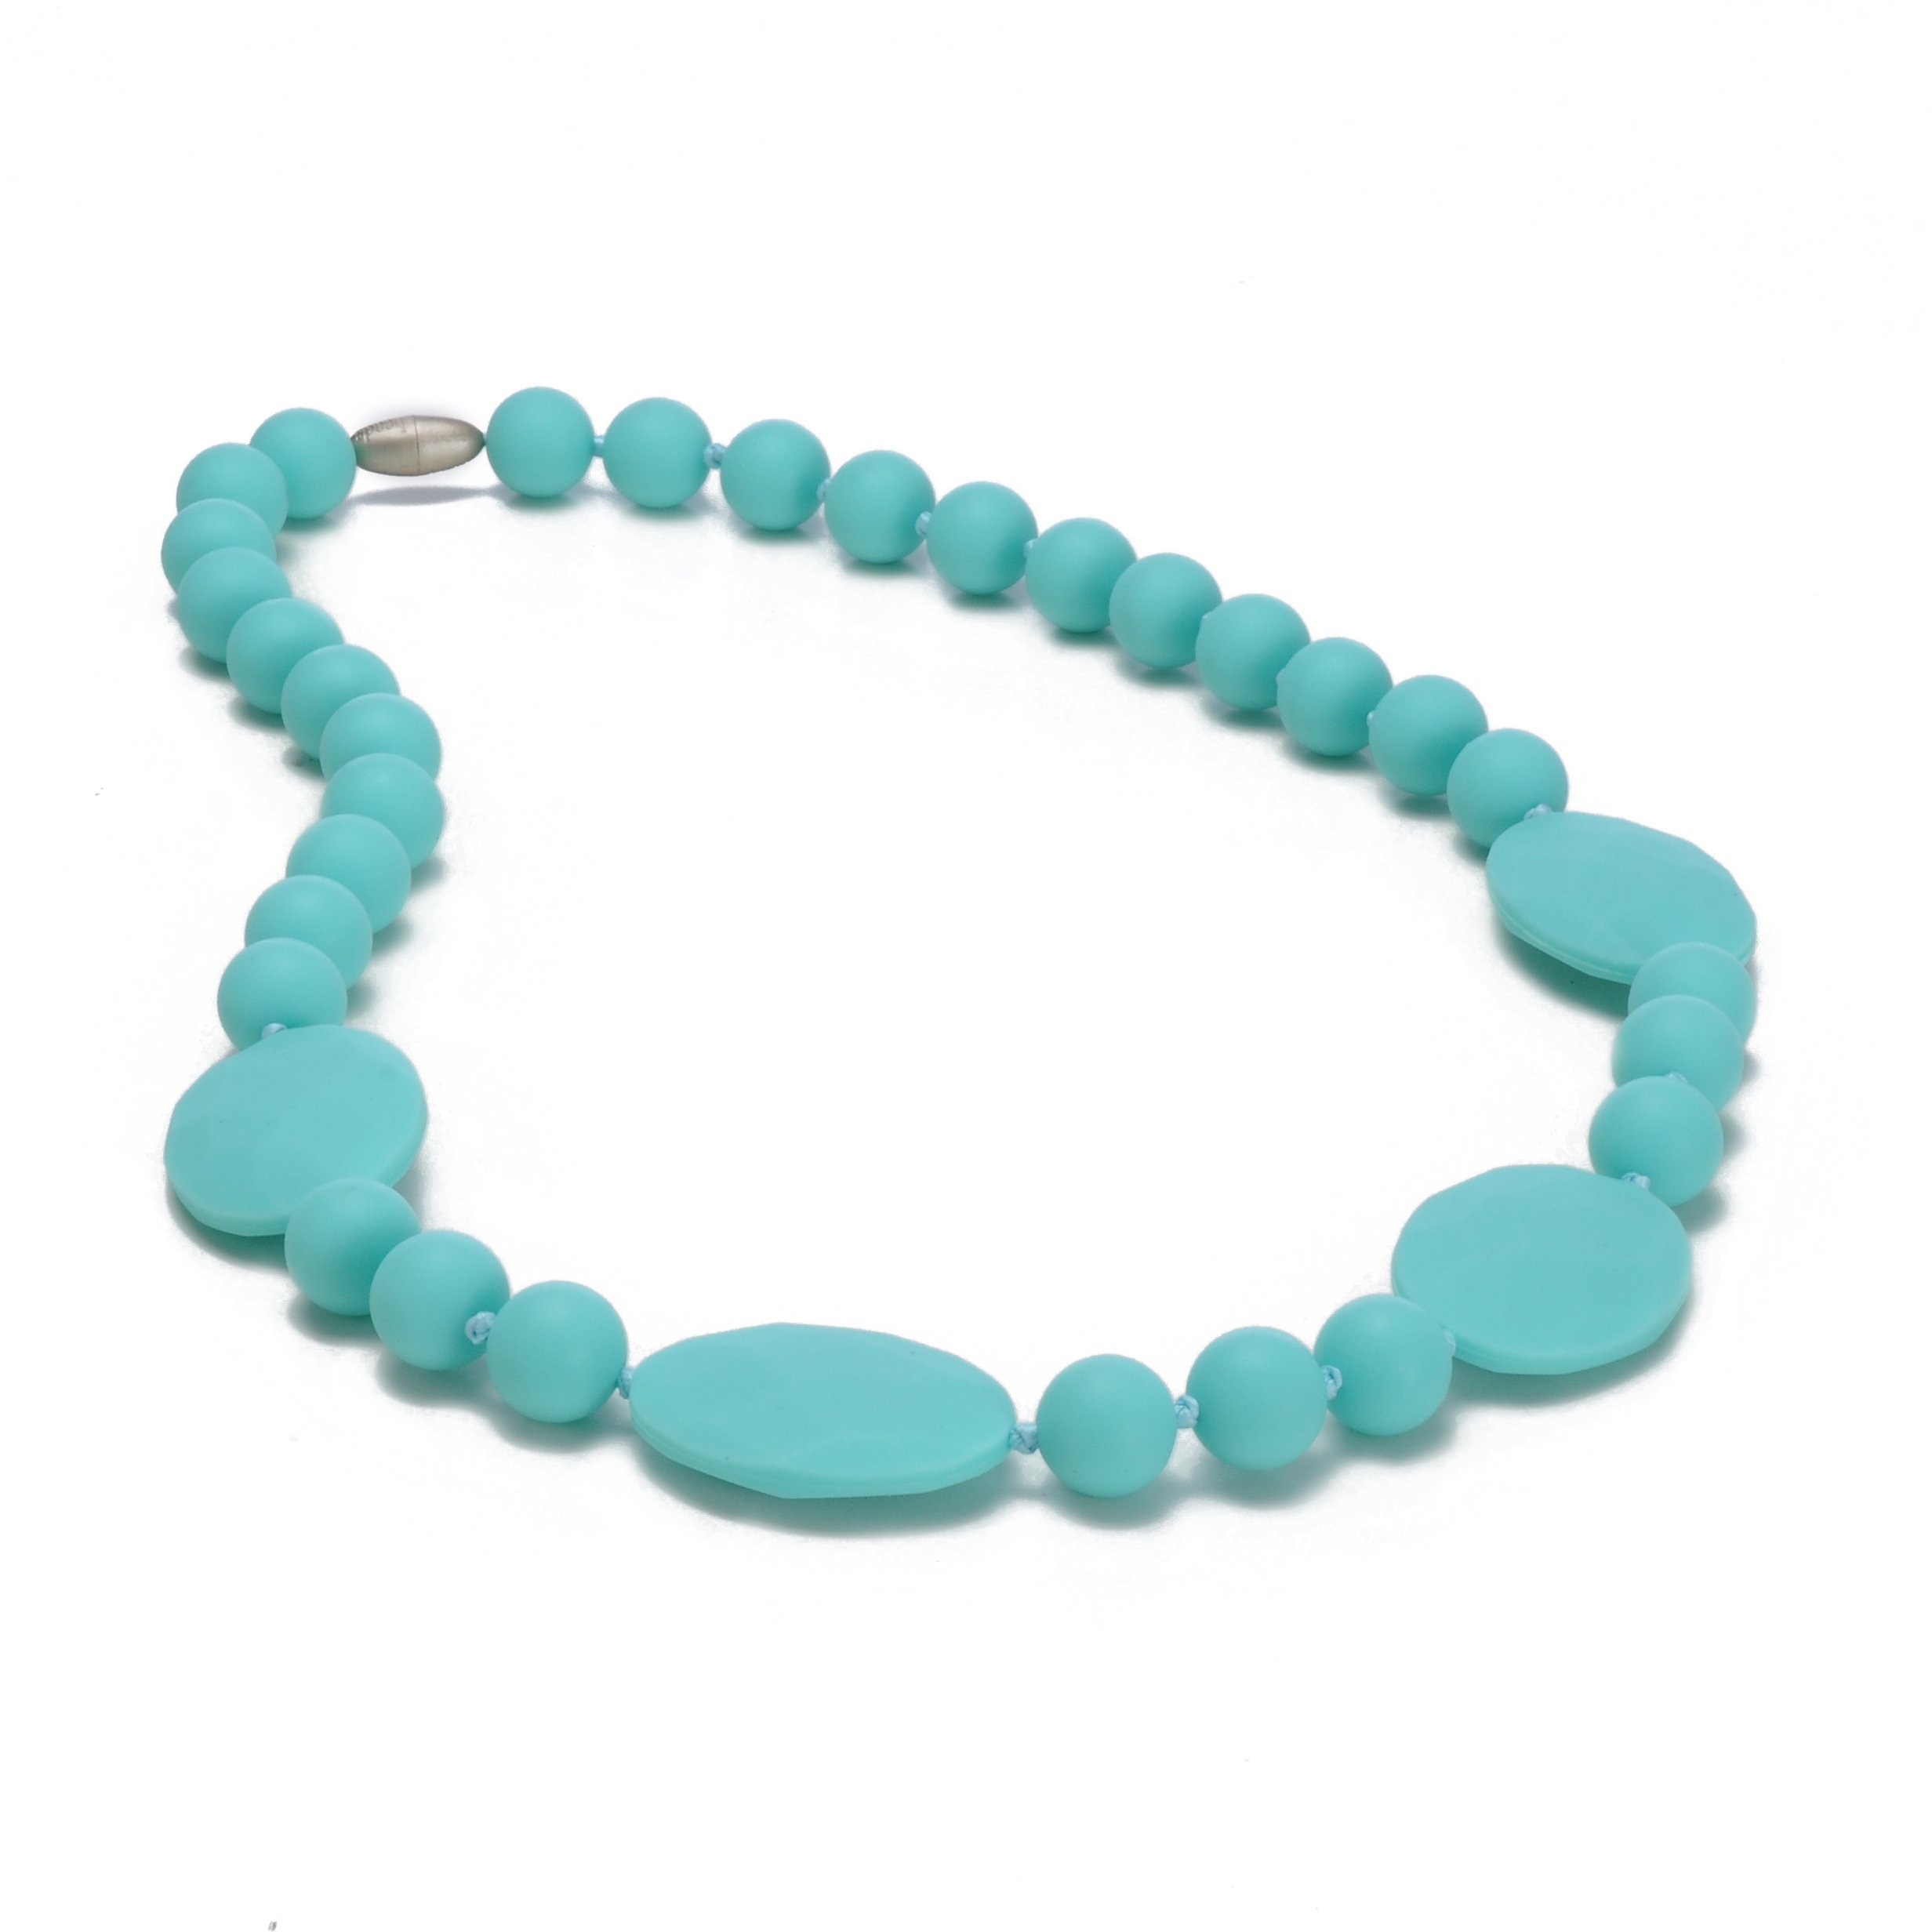 Chewbeads Necklace - Perry -Turquoise by Chewbeads